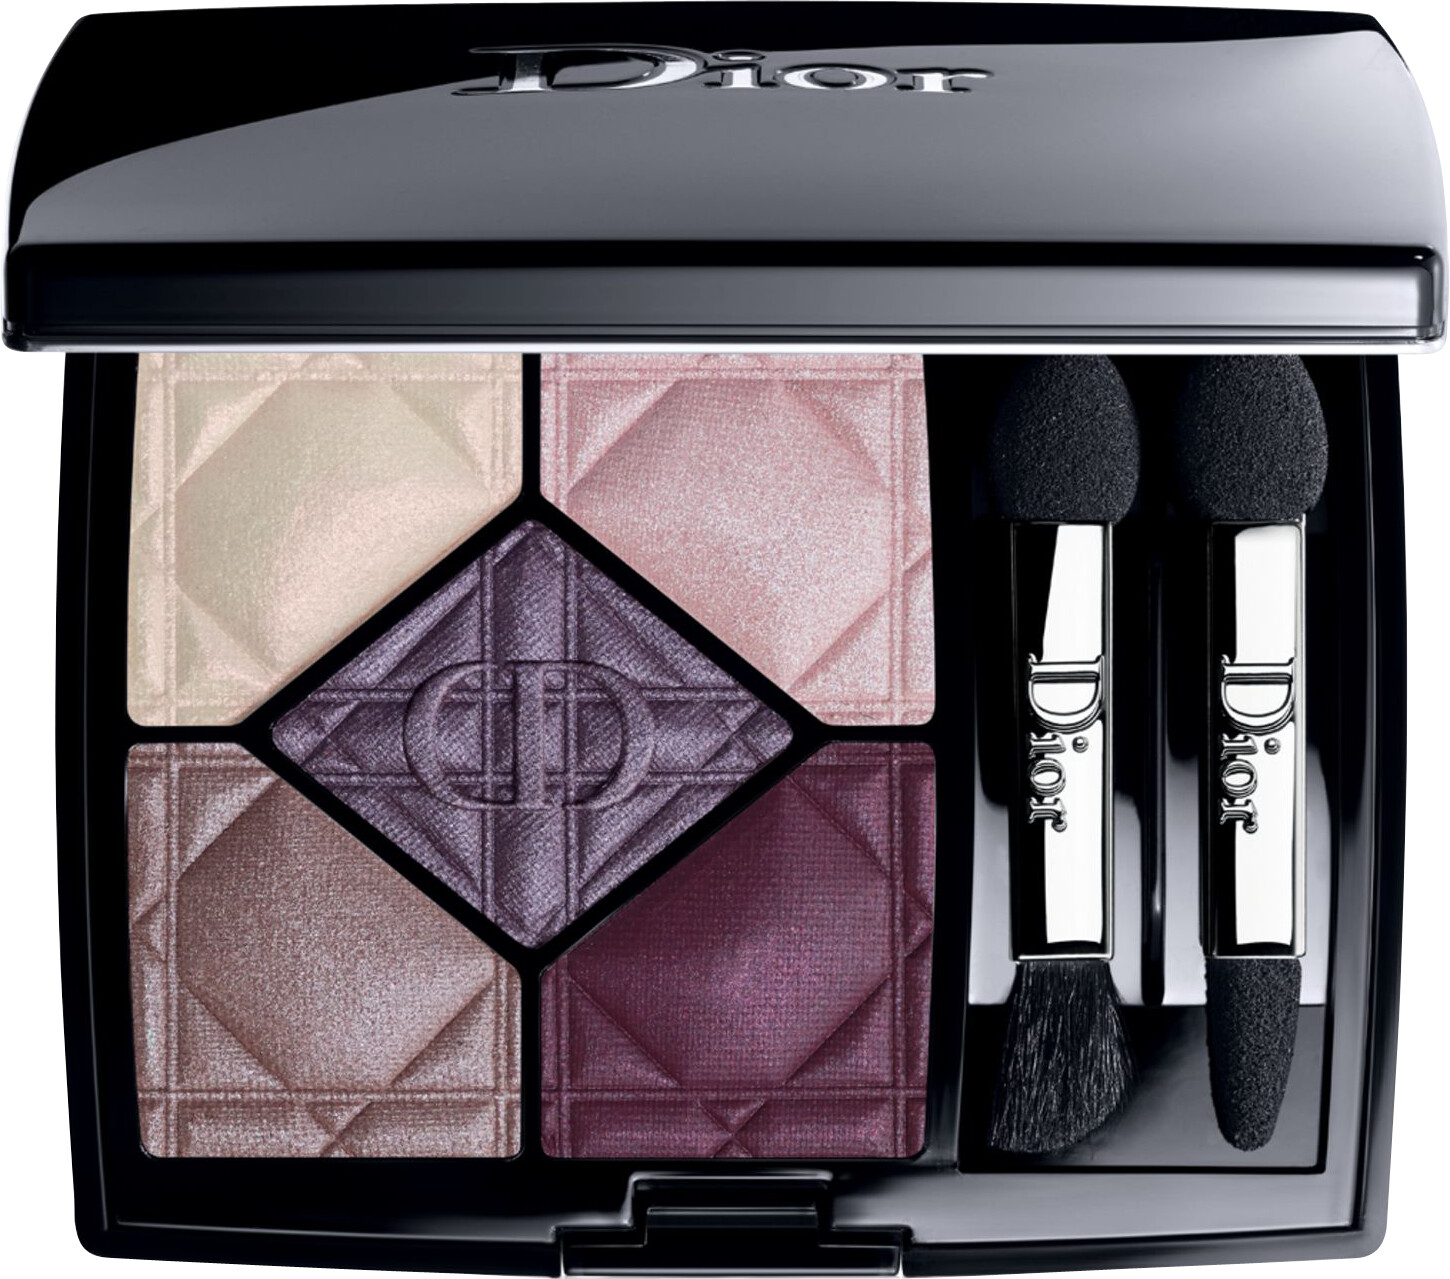 dior 5 couleurs colours & effects eyeshadow palette